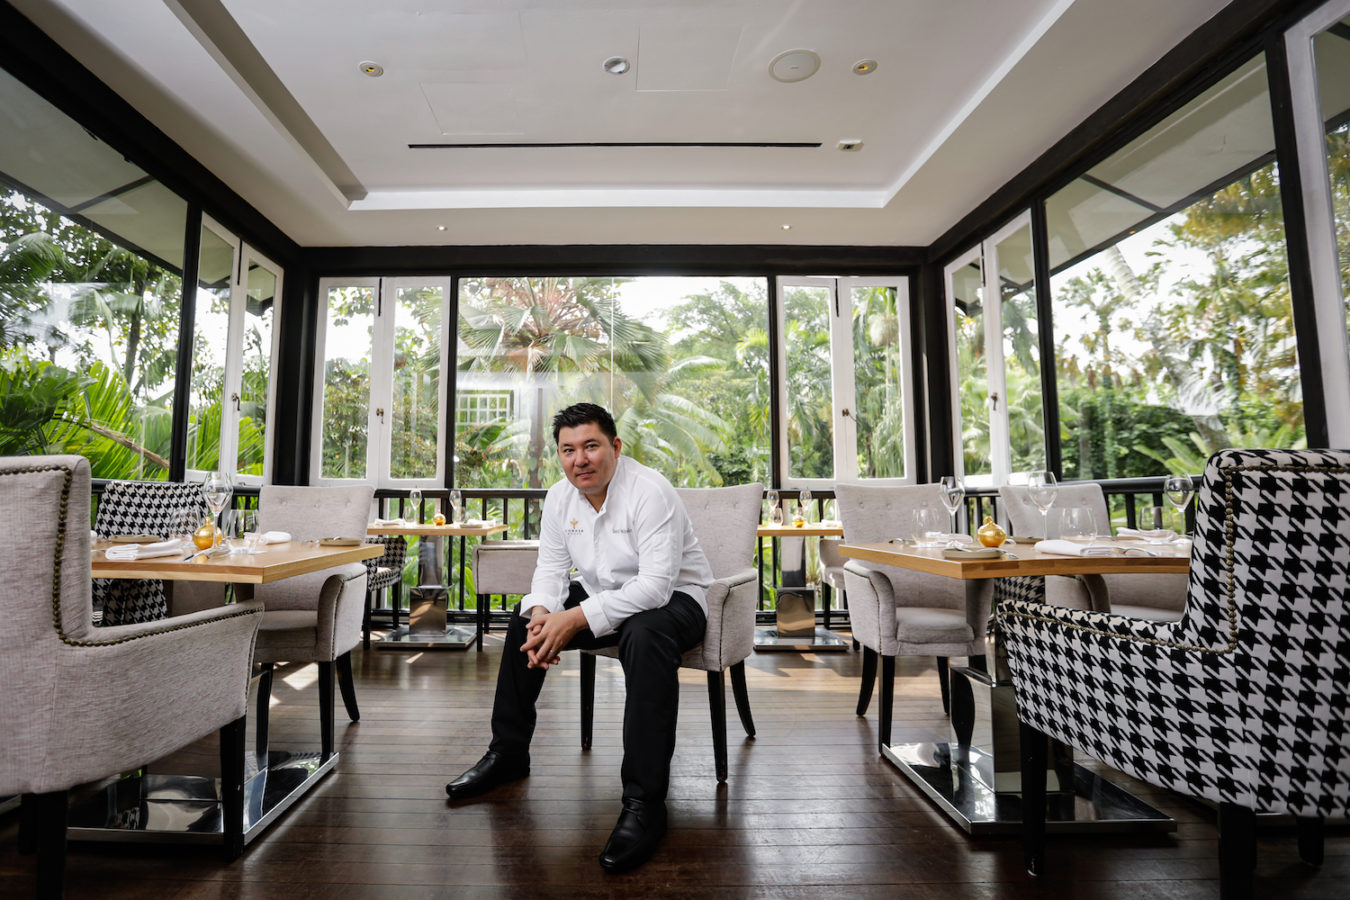 Corner House: A promising new concept that needs to find its footing